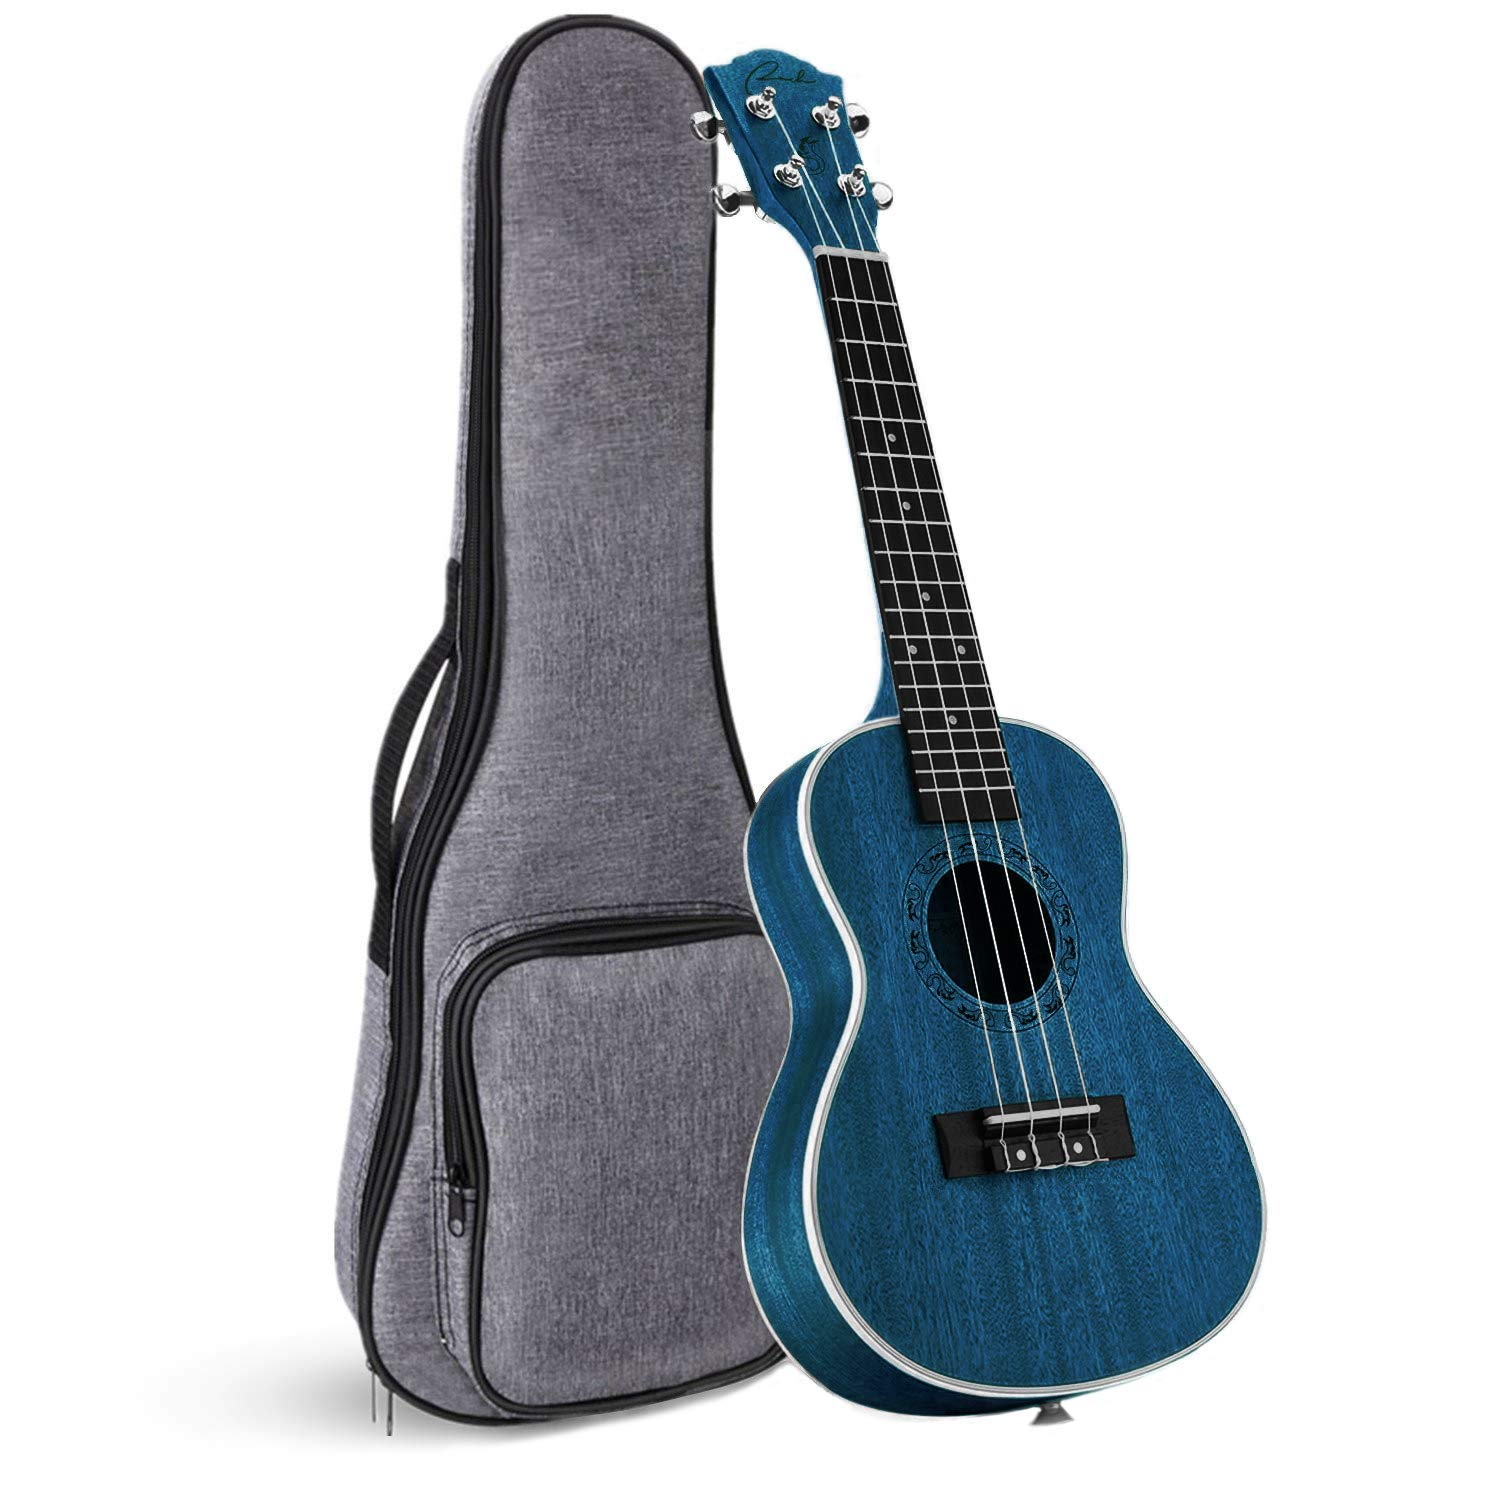 Concert Ukulele Ranch 23 inch Professional Wooden ukelele Instrument with Free Online 12 Lessons and Gig Bag - Small Hawaiian Guitar - Starry Blue by Ranch